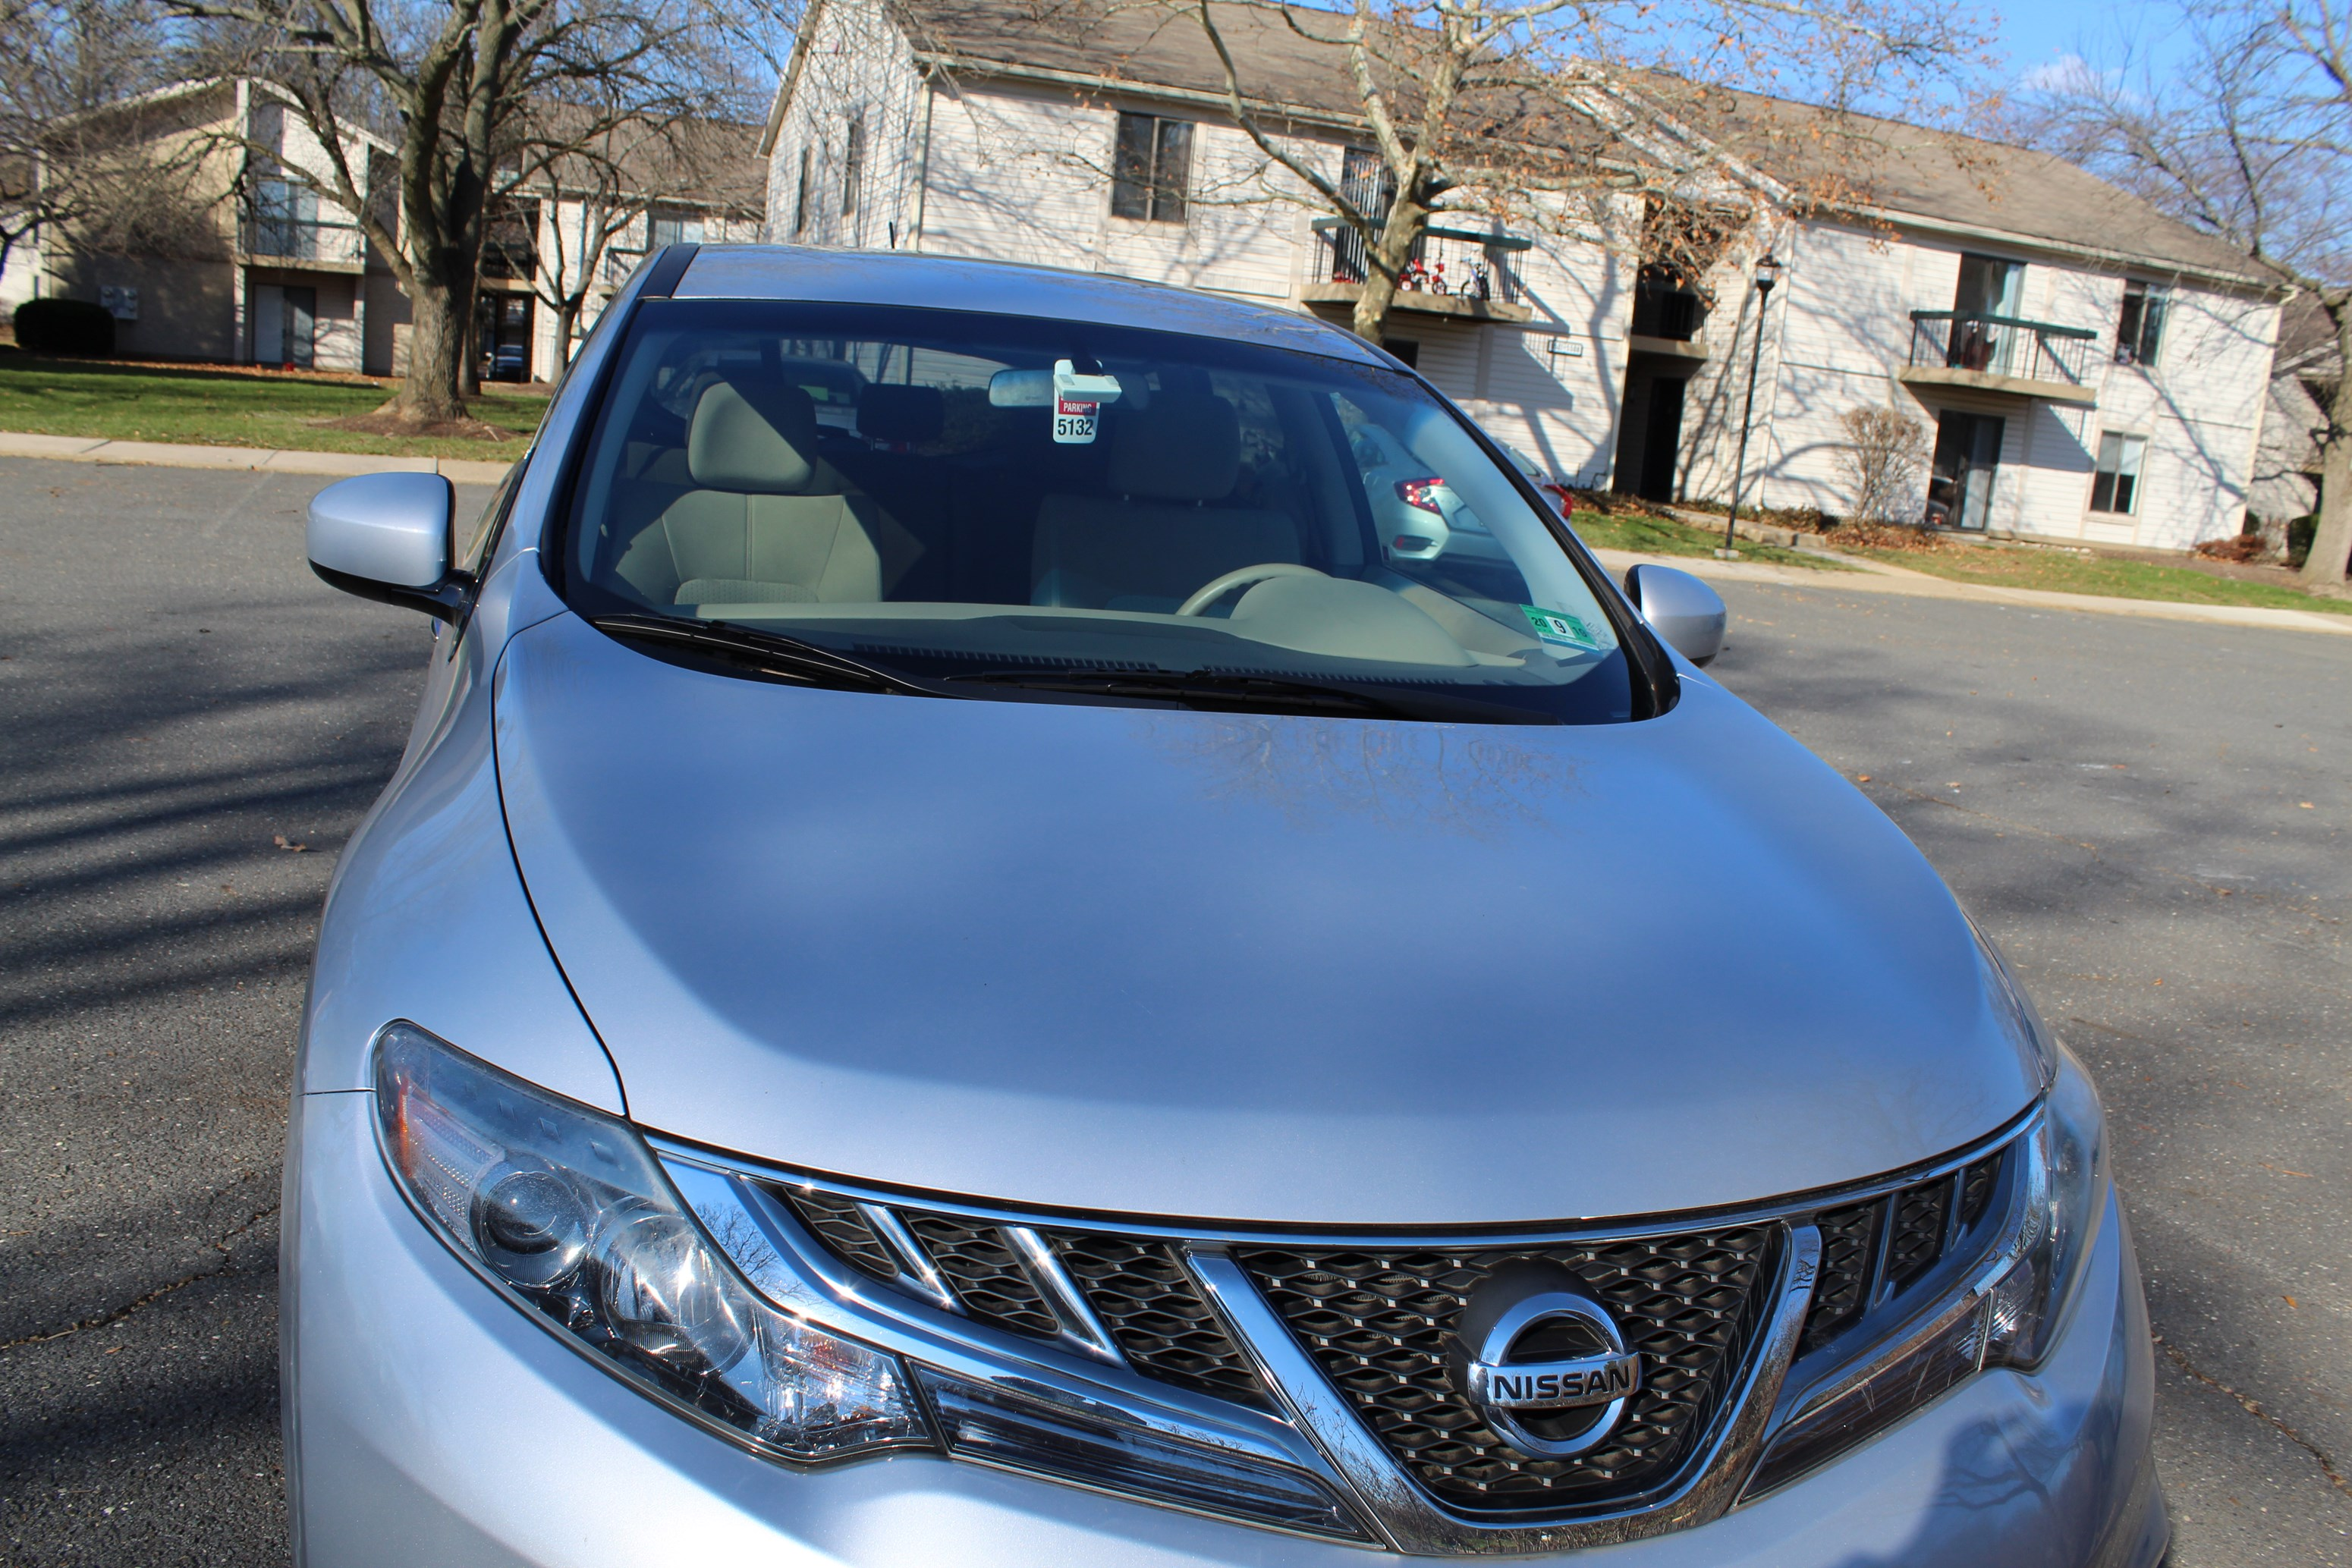 nissan credit suv here le check listings no murano buy pay